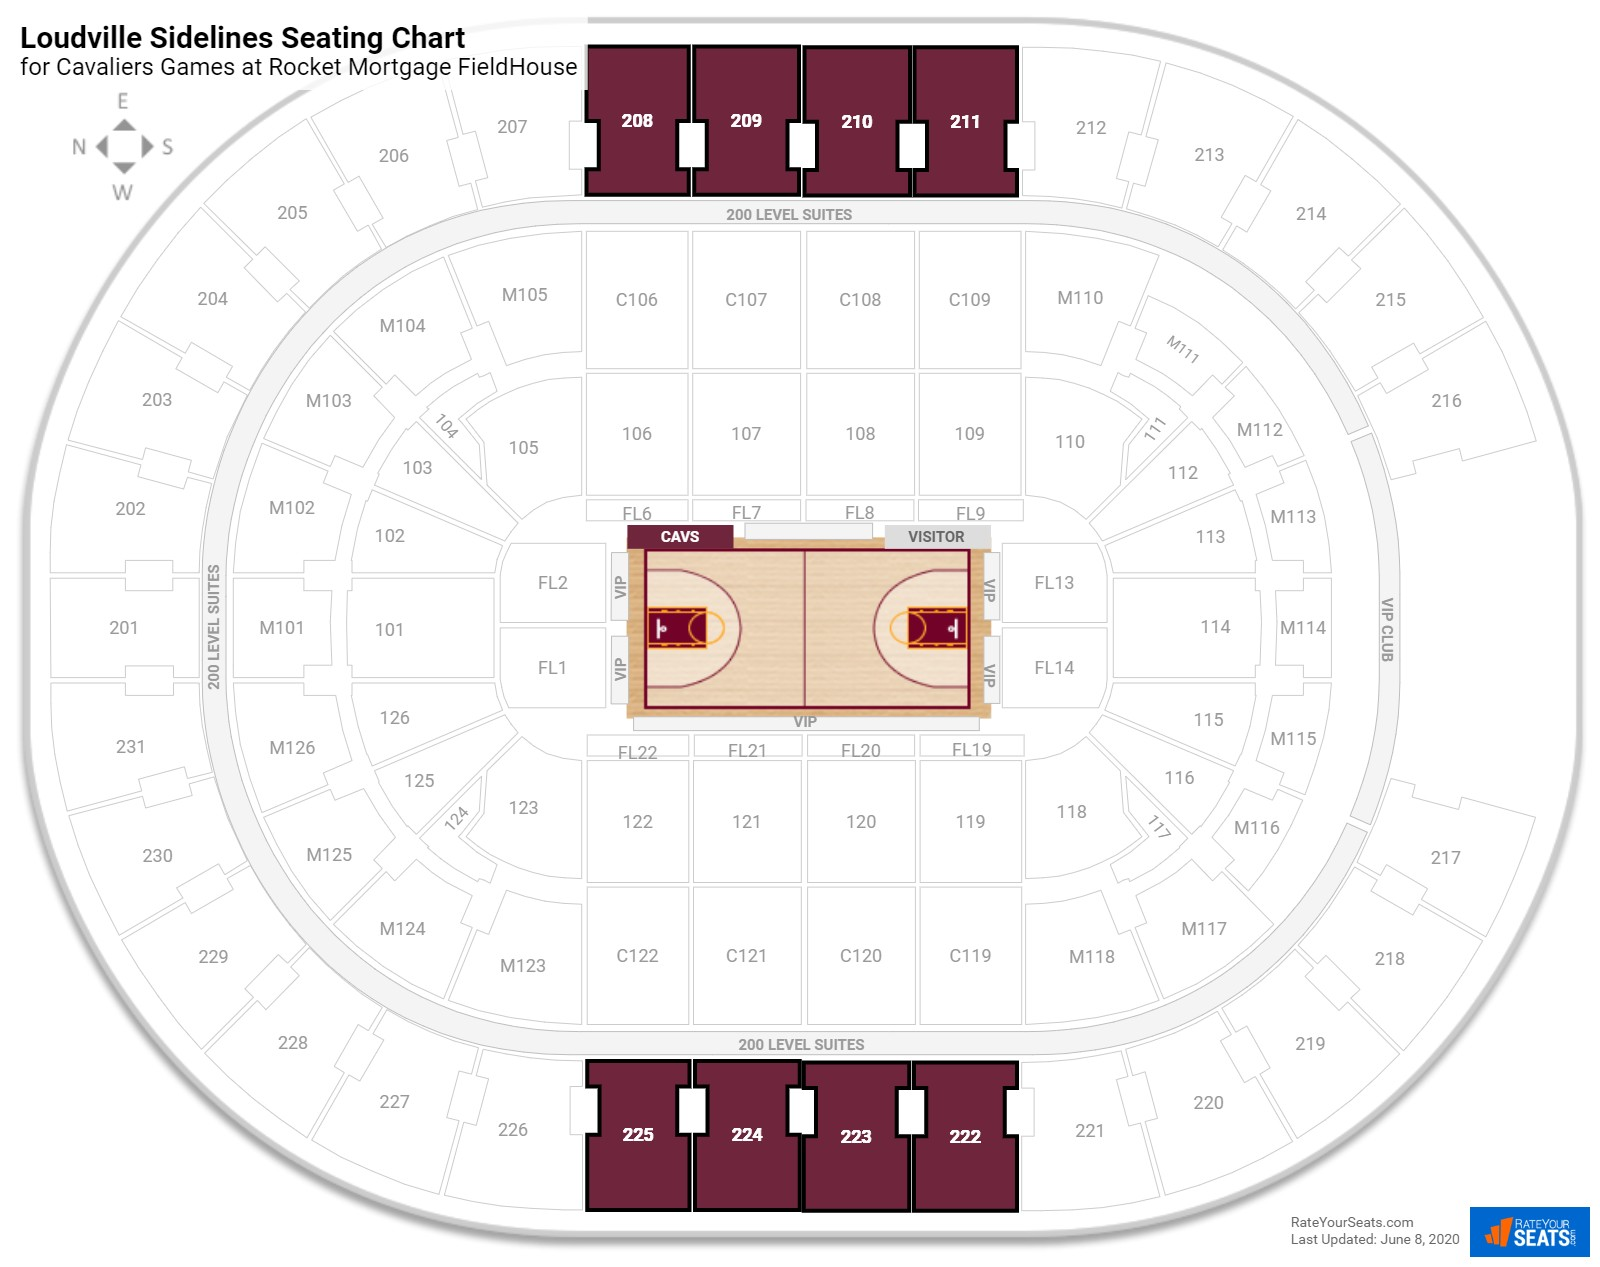 Quicken Loans Arena Loudville Sidelines seating chart